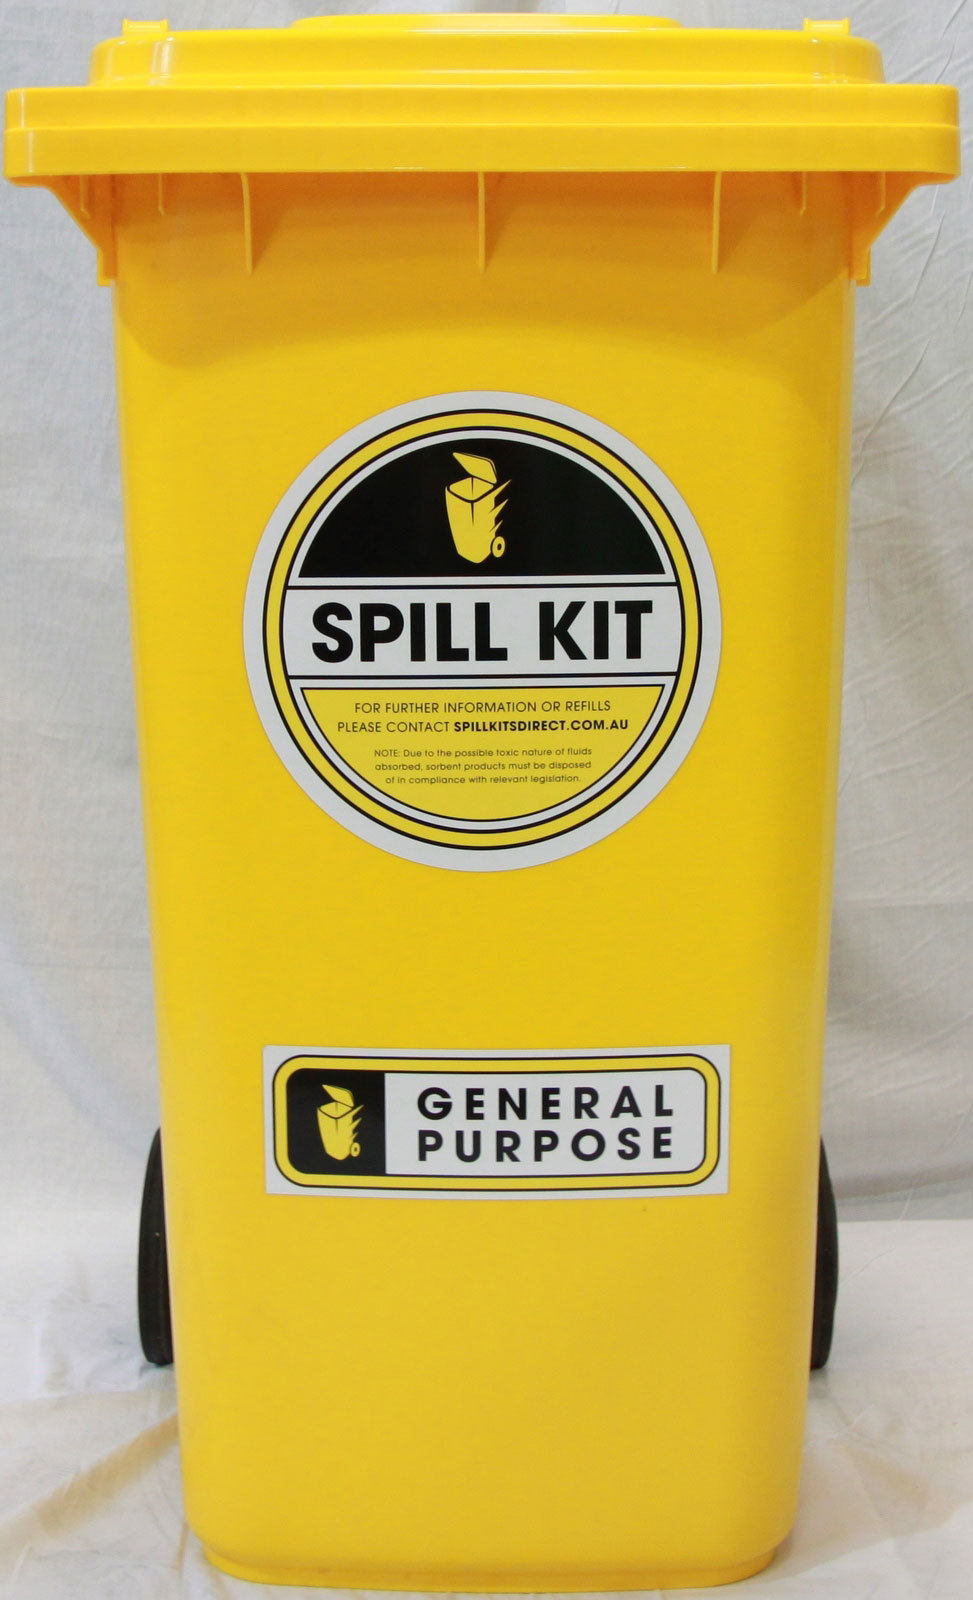 General Purpose Spill Kits For Oils Fuels Water Based